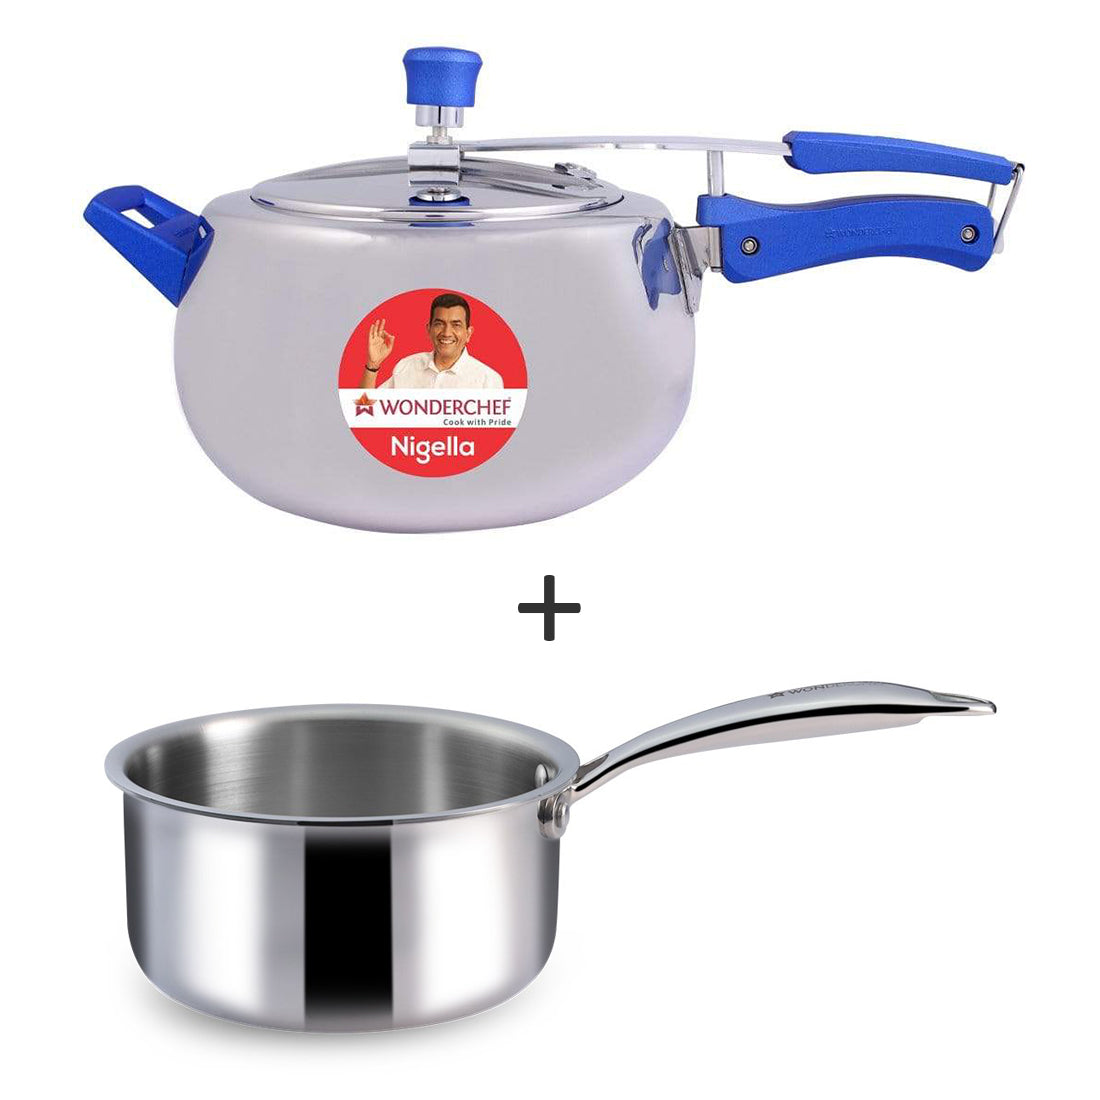 Nigella Stainless Steel Inner Lid Pressure Cooker 5L and Nigella Triply Stainless Steel Sauce Pan